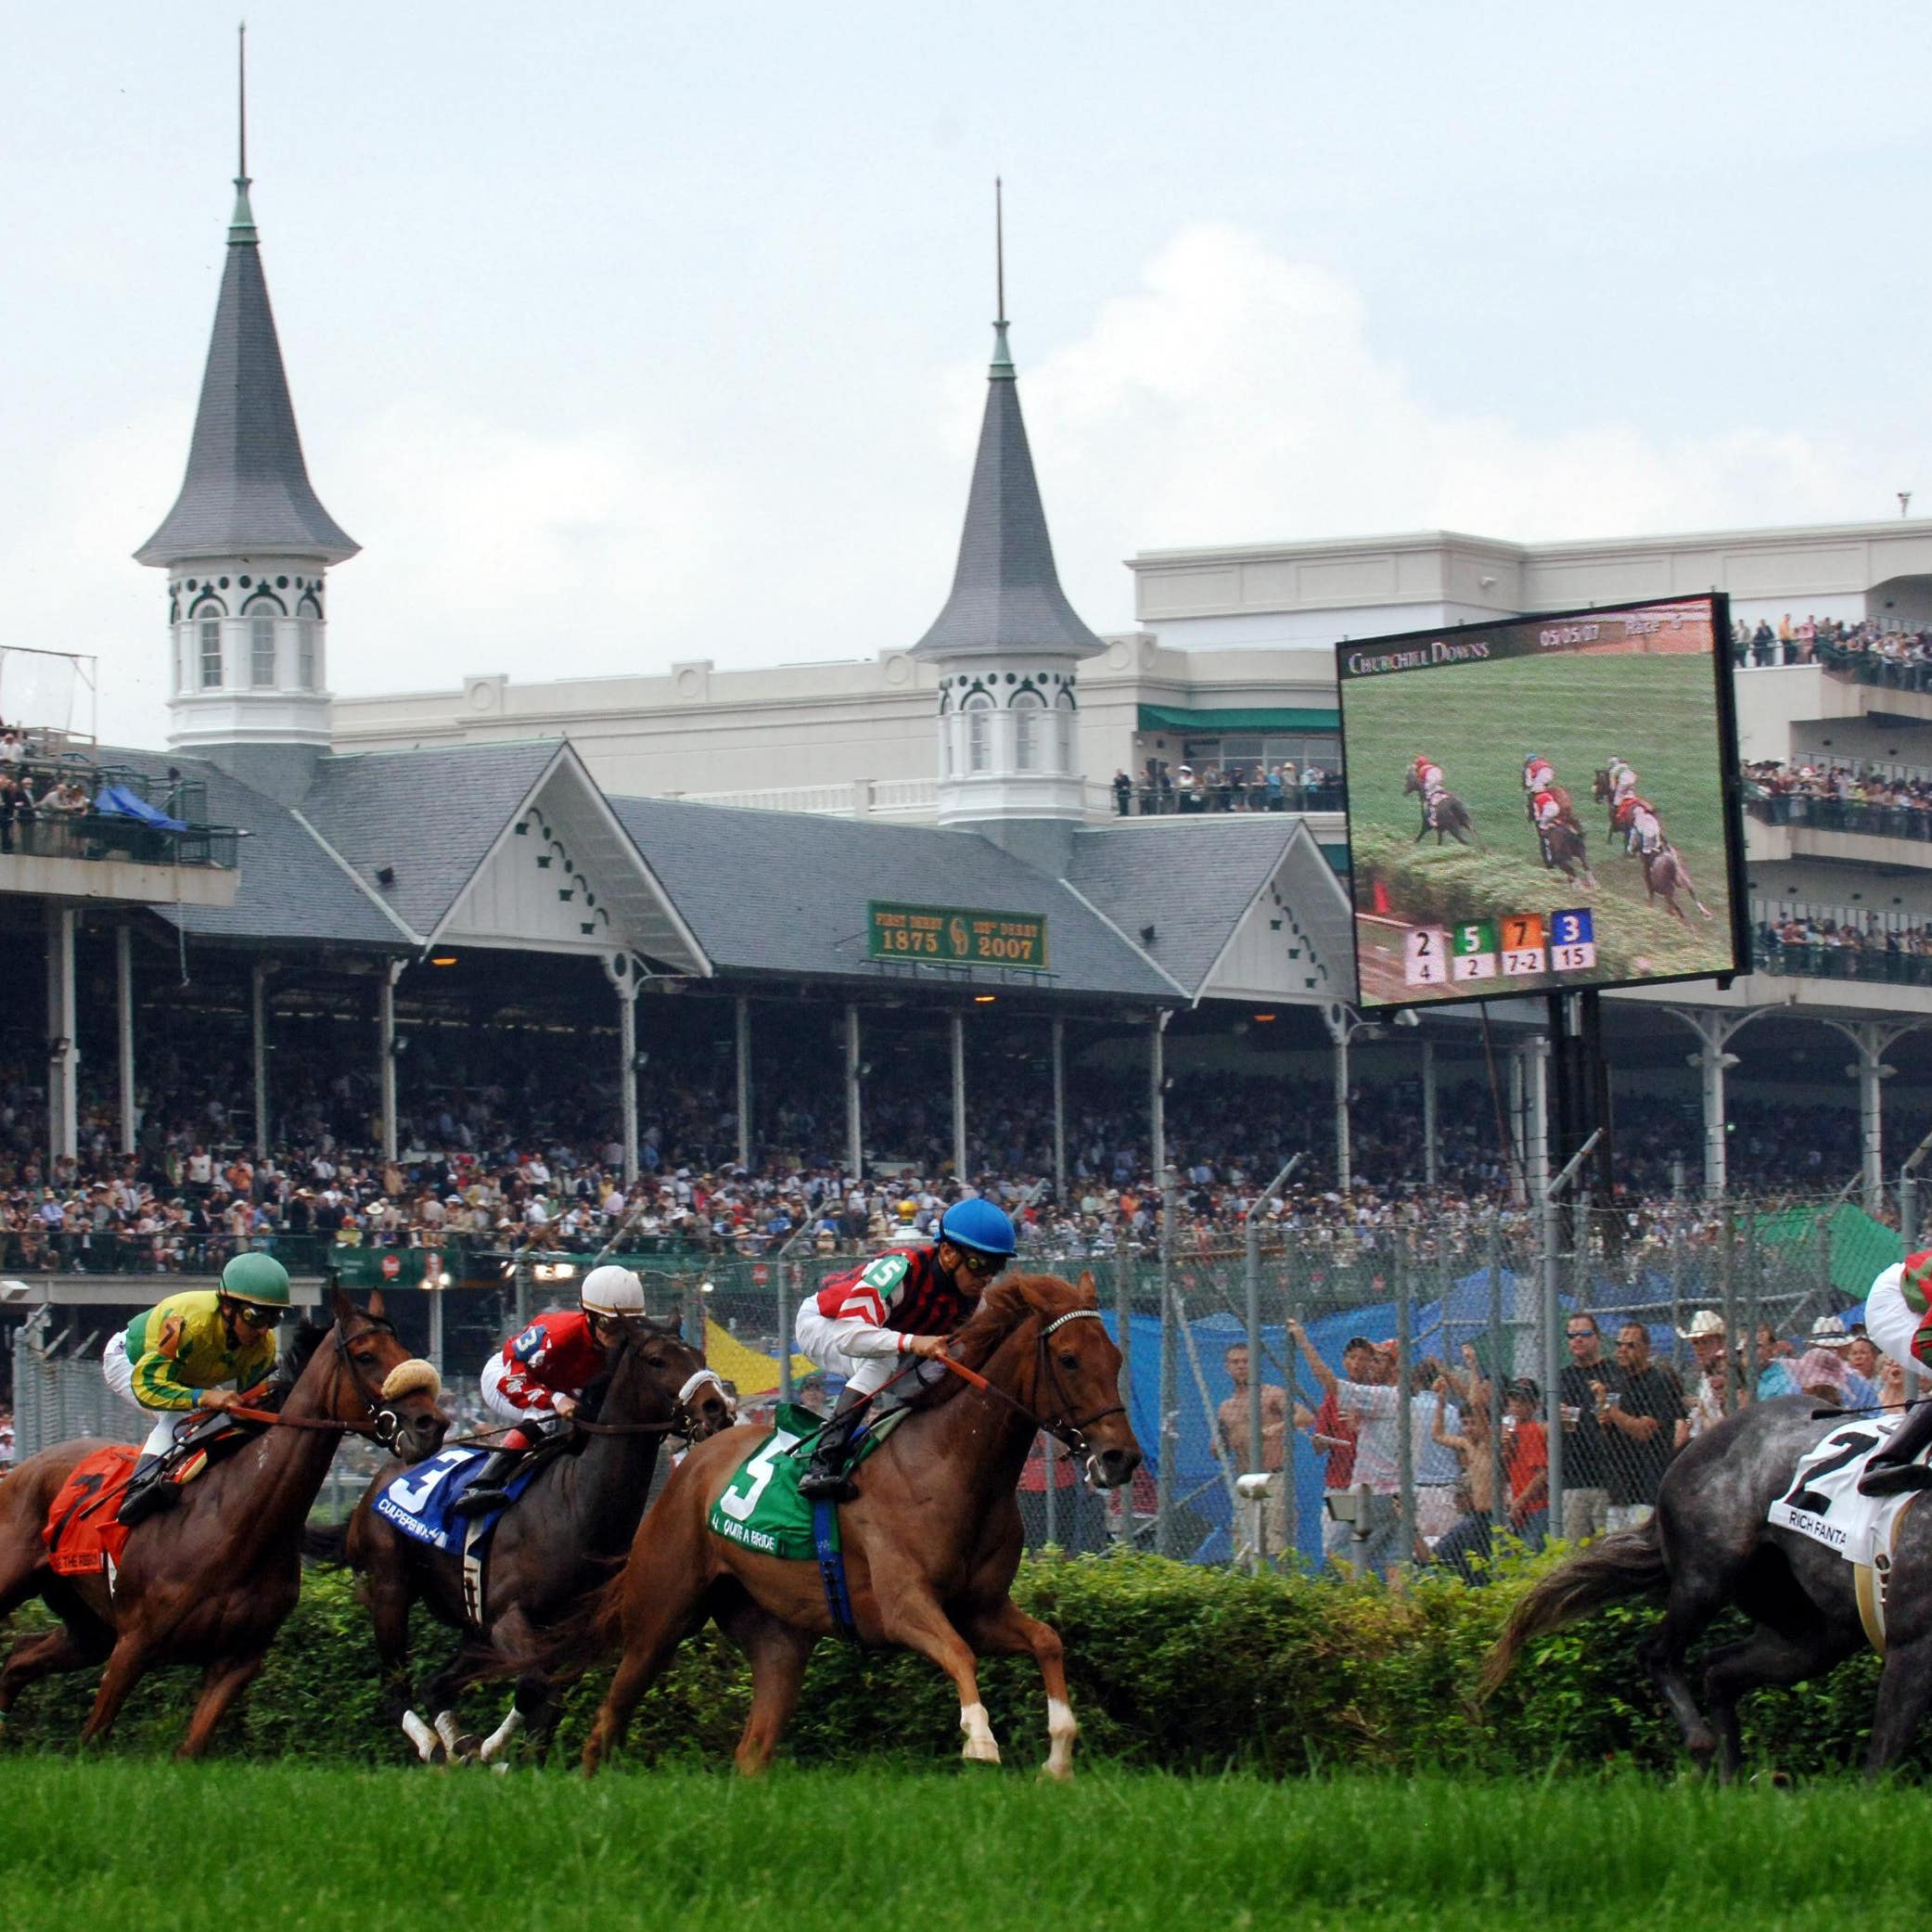 The Breeders' Cup is back at Churchill Downs this year